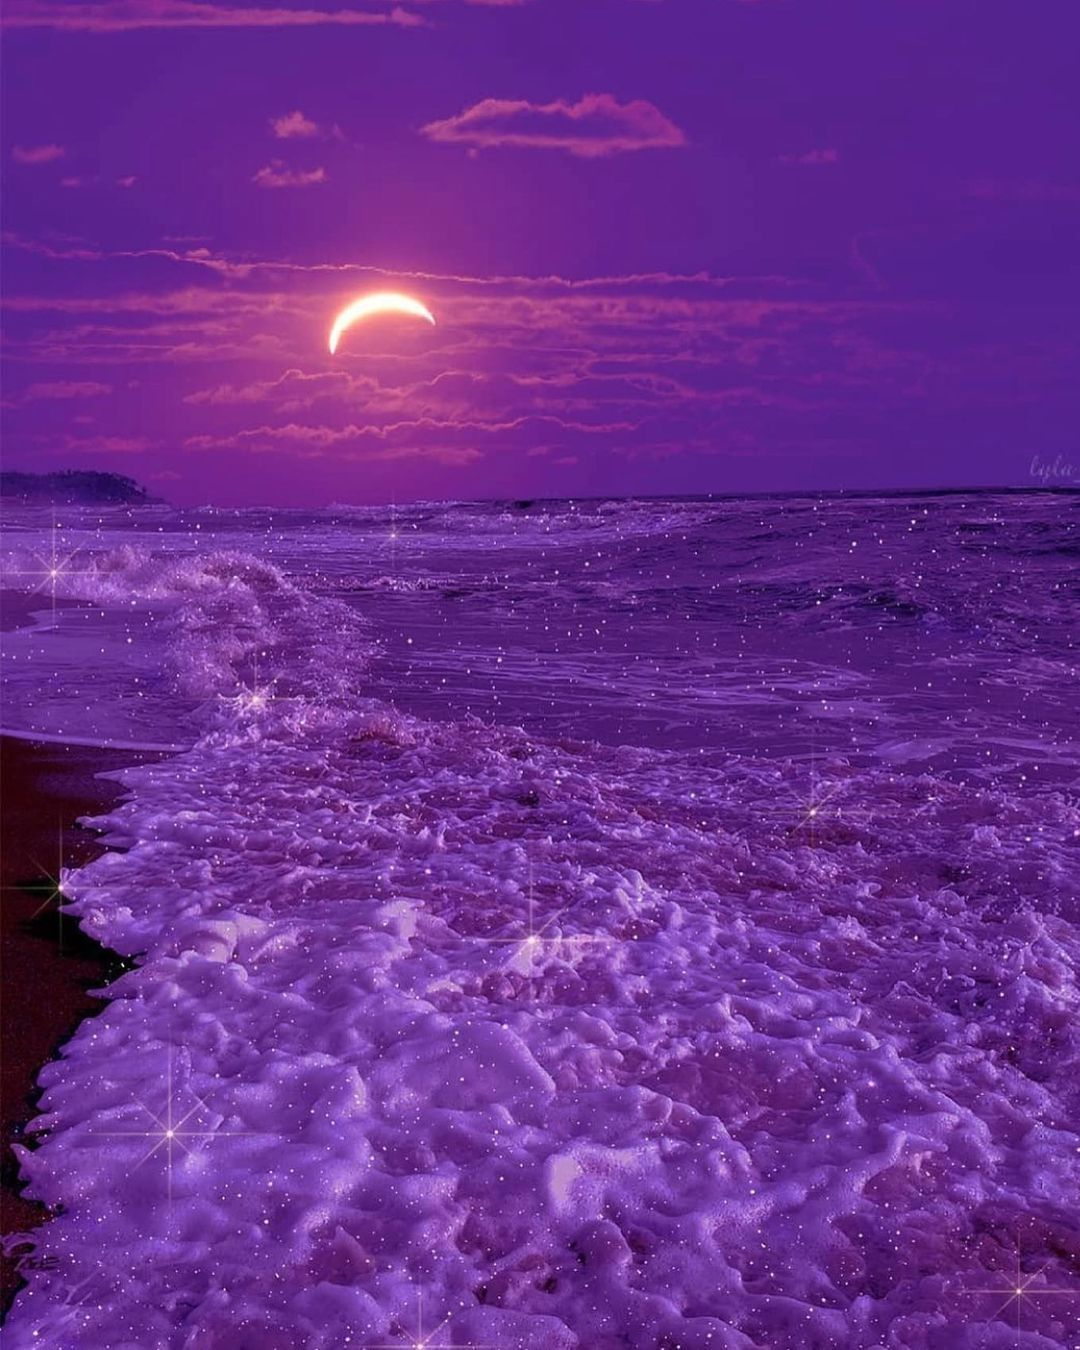 Outrun Youth On Instagram Star Filled Tides Lyla Ab Check Out Manhattanbuzz N Purple Aesthetic Background Best Landscape Photography Sky Aesthetic